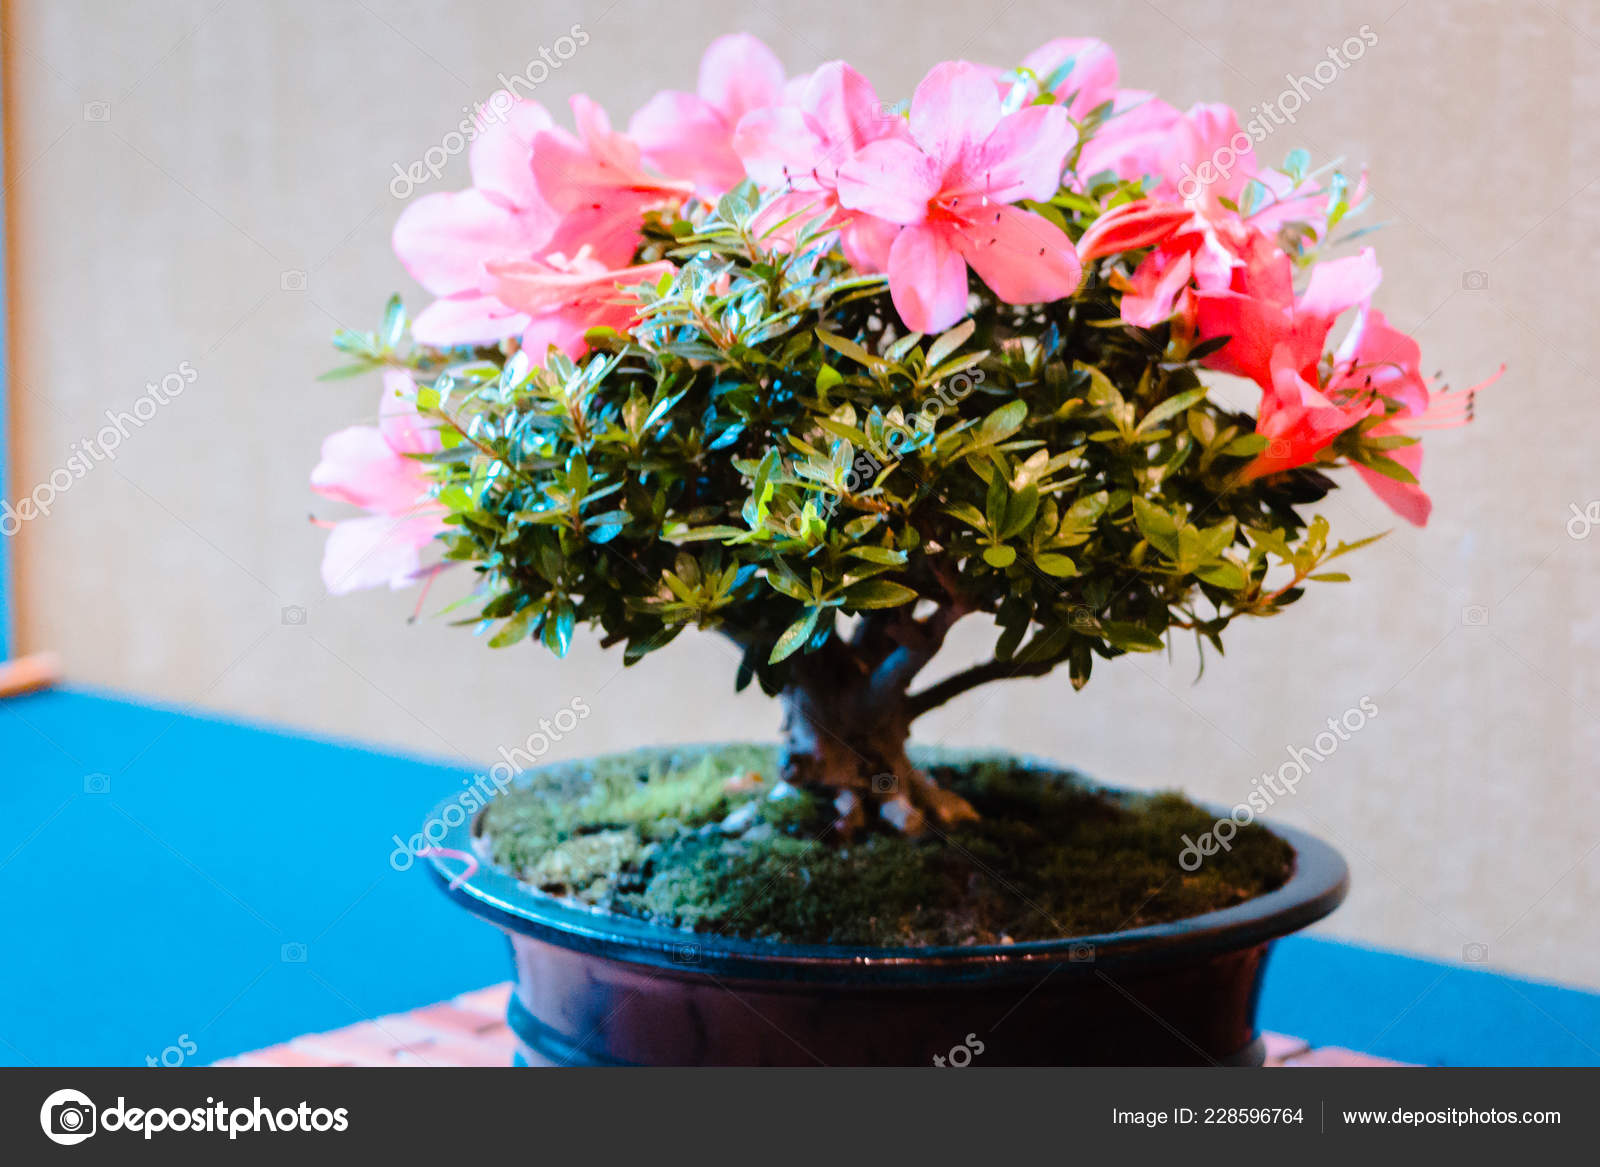 Bright Pink Flowers Blooming Bonsai Tree Stock Photo C Mike S Deemer Gmail Com 228596764